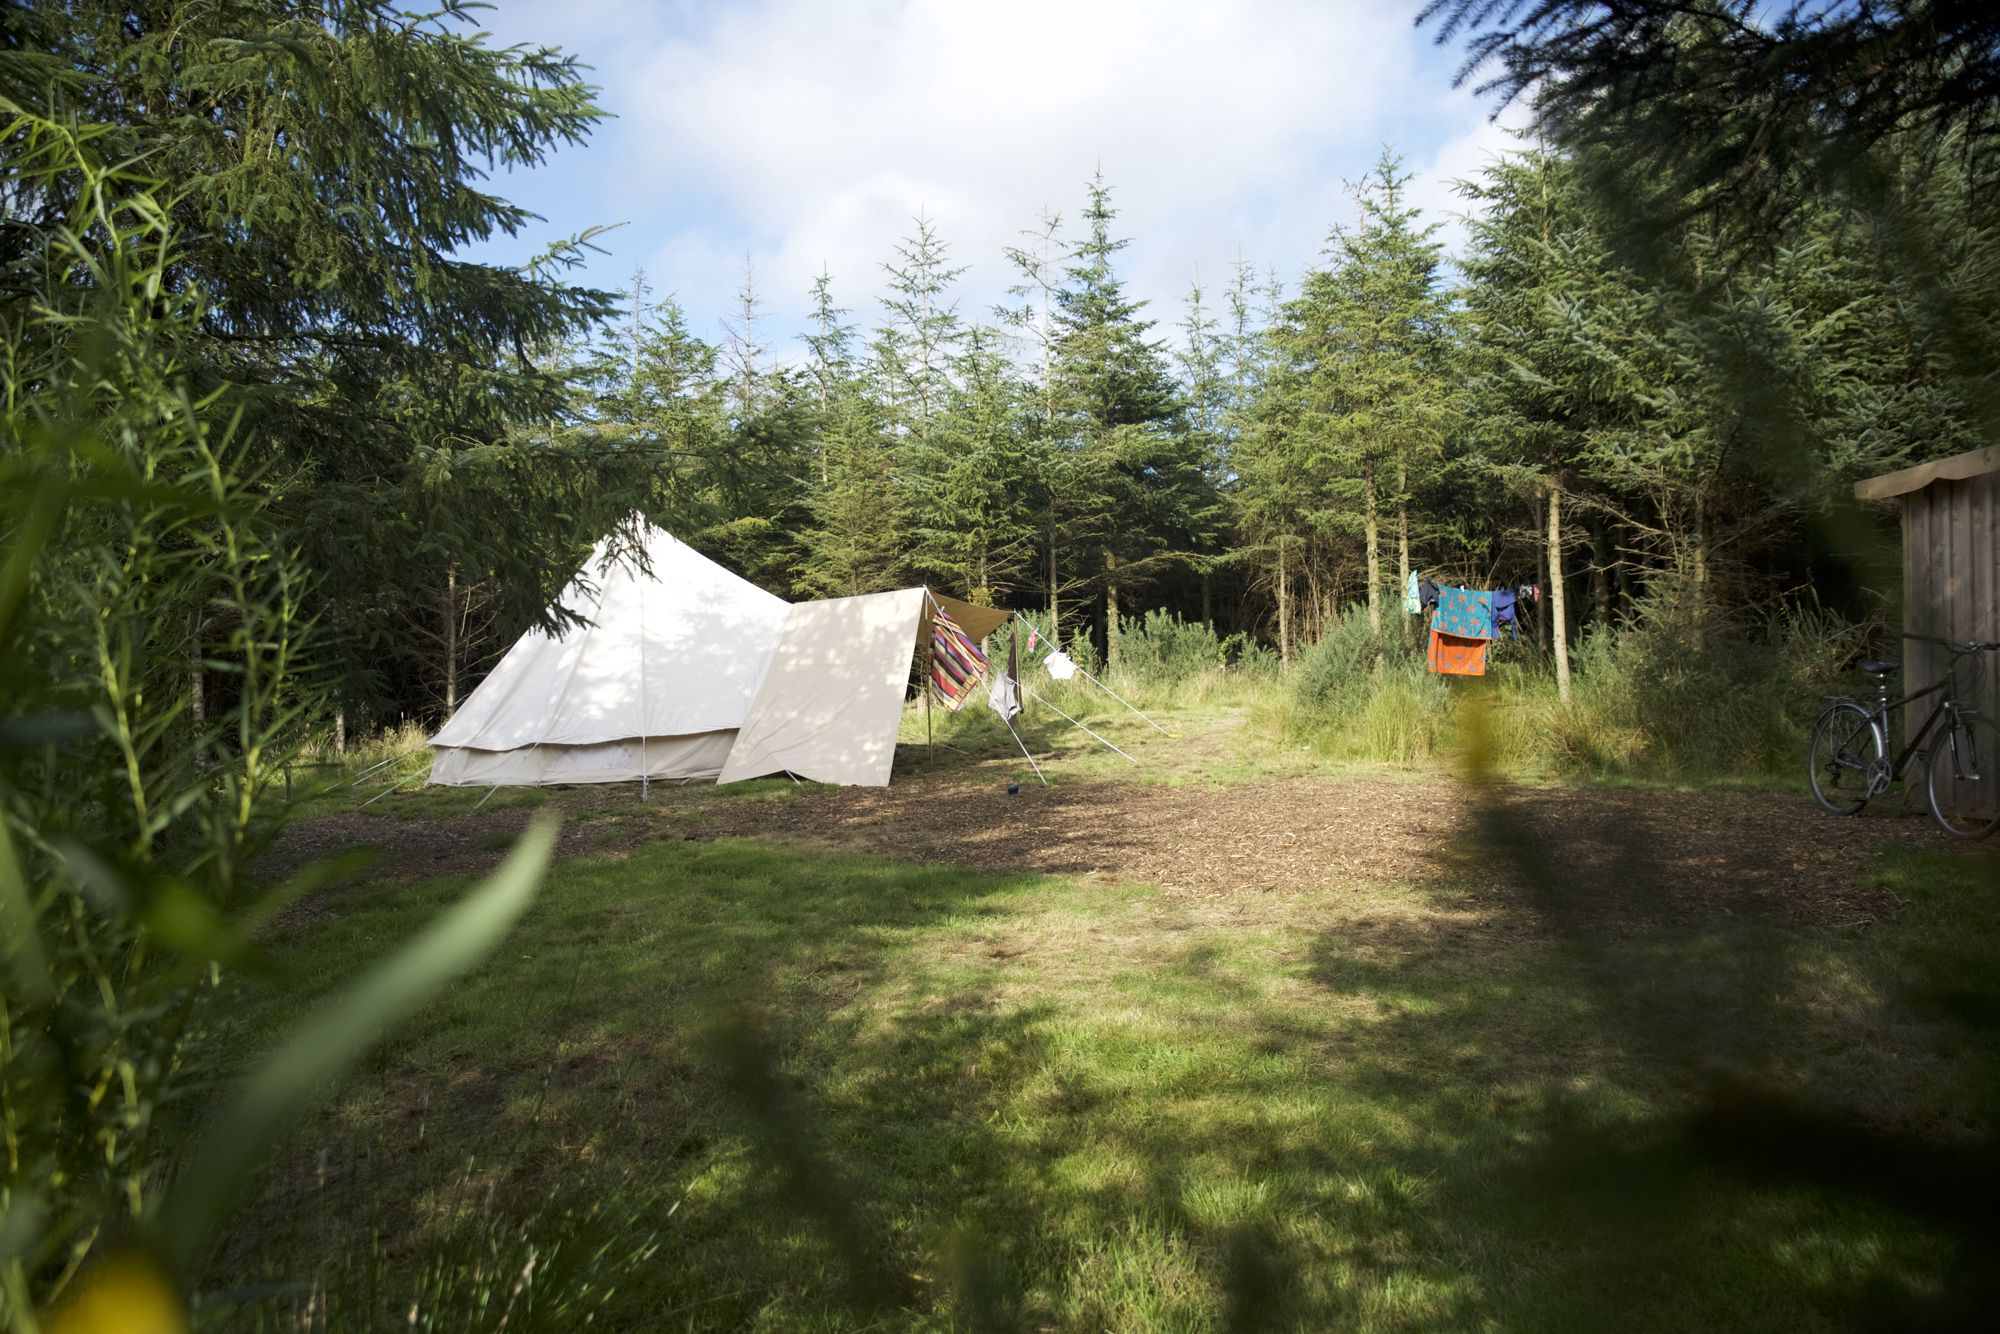 Campsites in South Wales | Best camping sites in South Wales